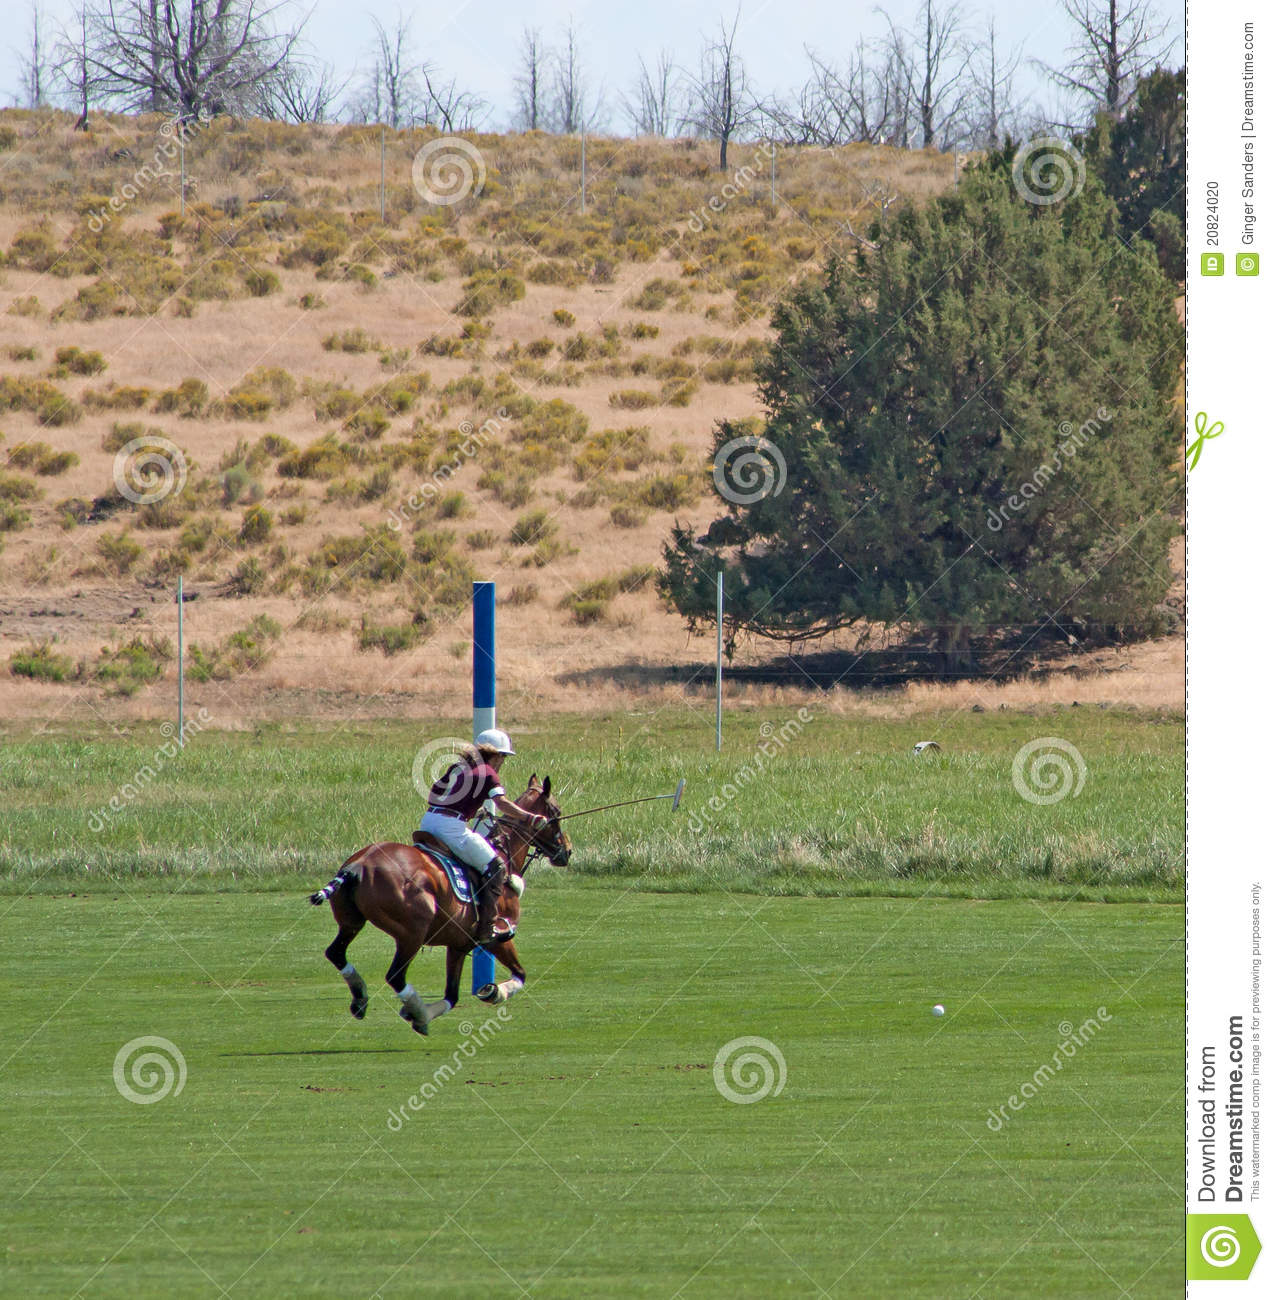 Female Polo Player Heading For Goal